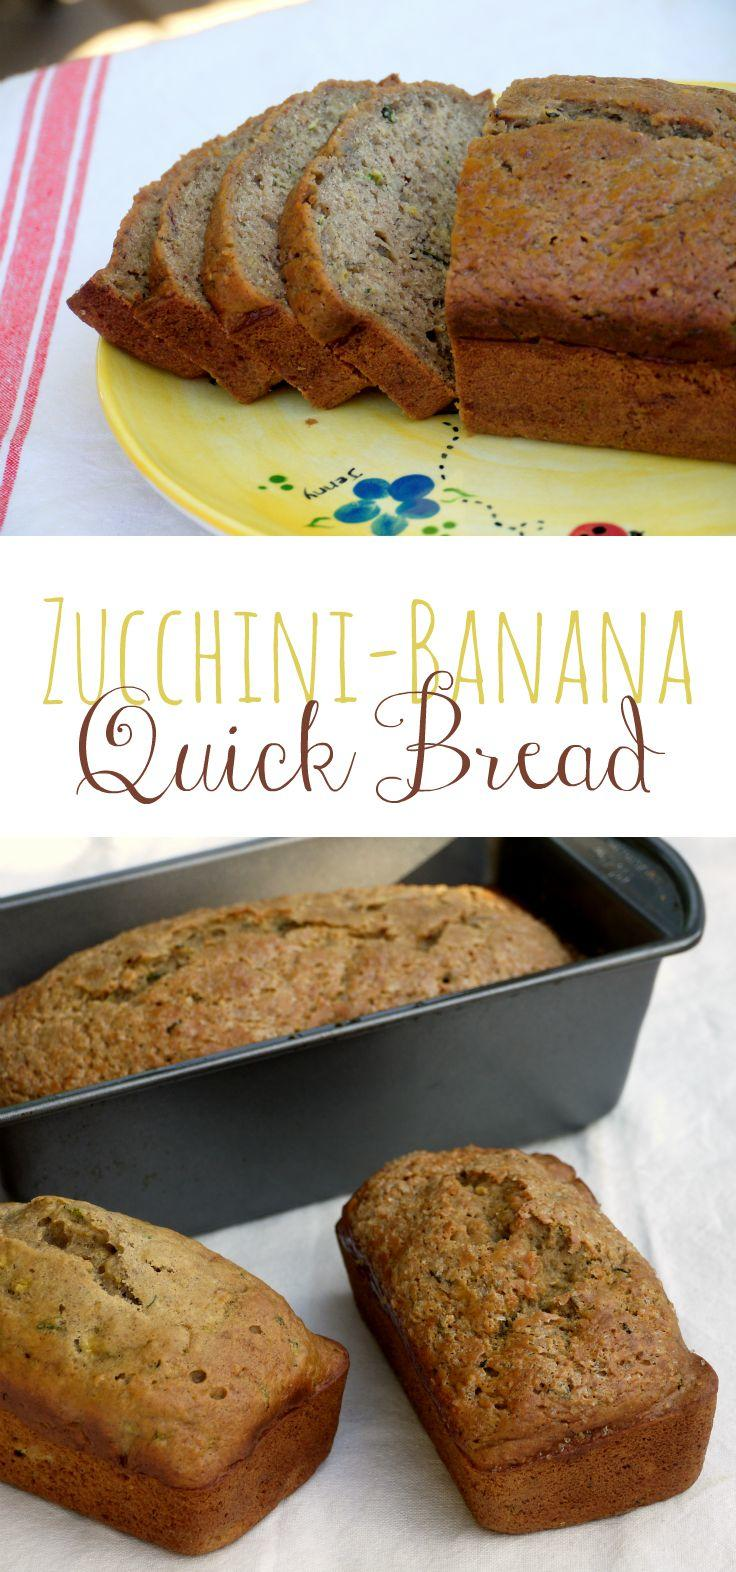 Is it Zucchiana Bread? Banini Bread? Whatever you want to call it, this amazingly moist zucchini-banana bread is the best of both worlds! | The Good Hearted Woman